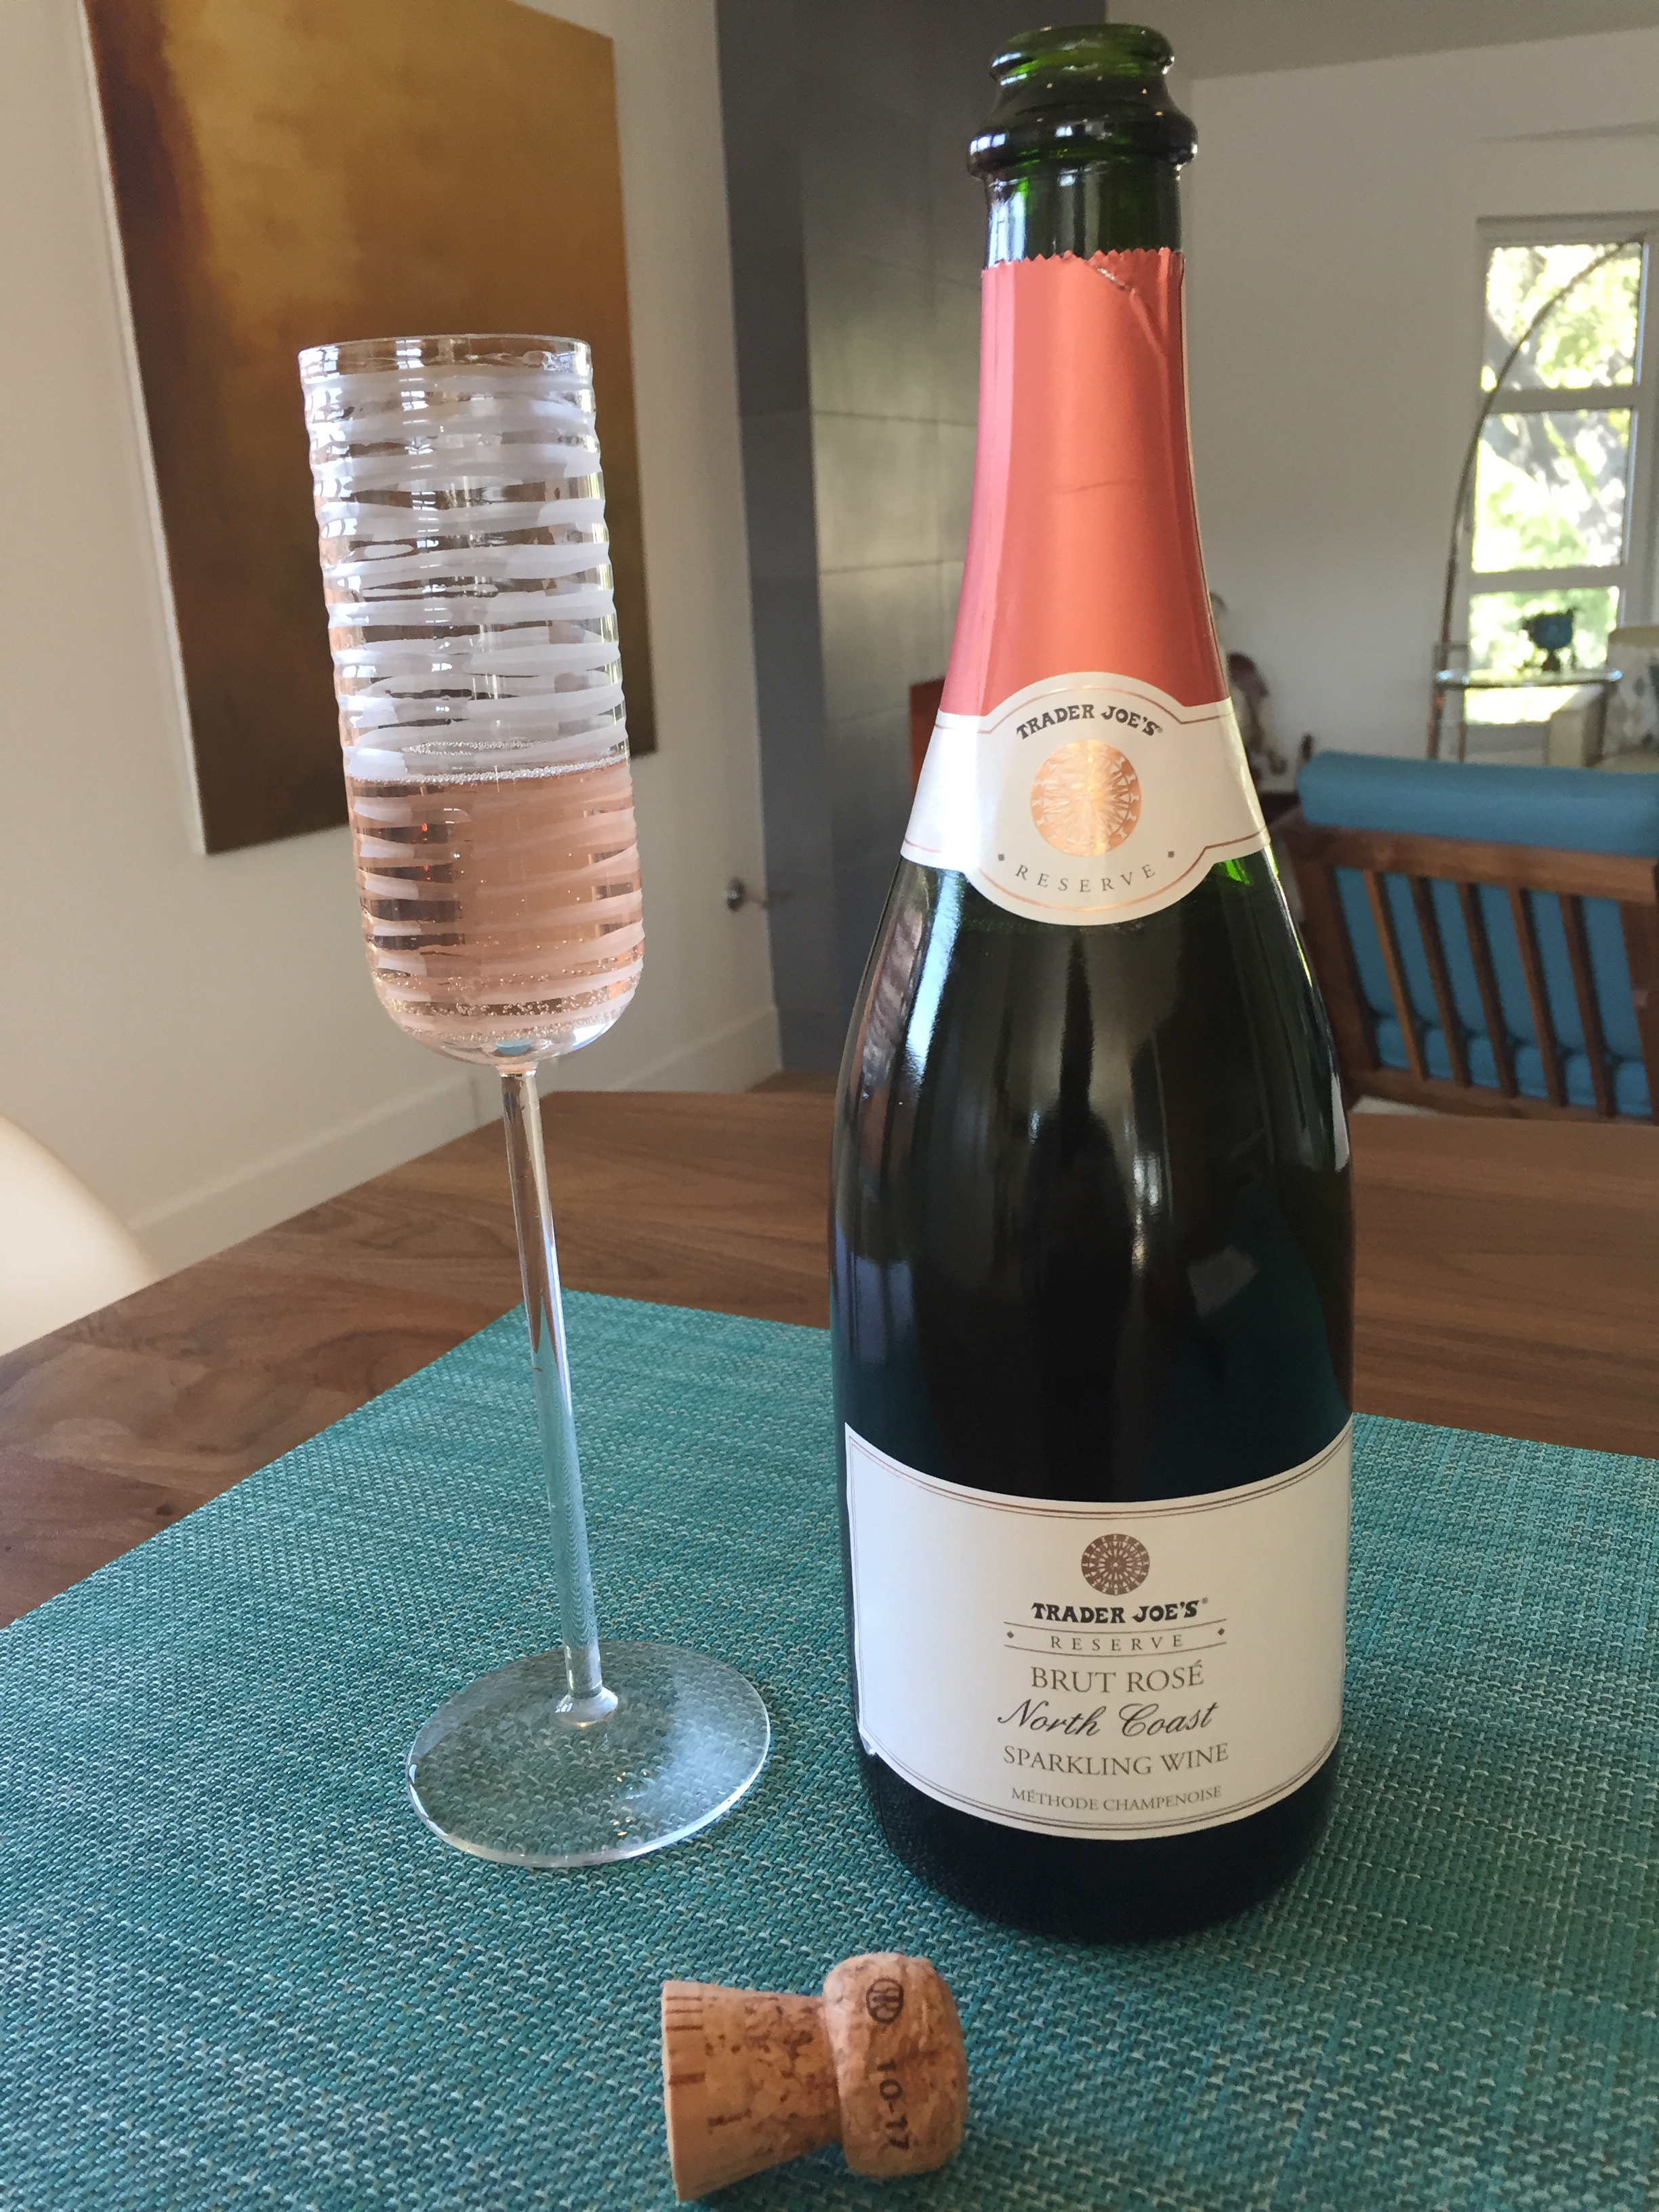 Bottle and glass of Trader Joe's Reserve North Coast Brut Rose